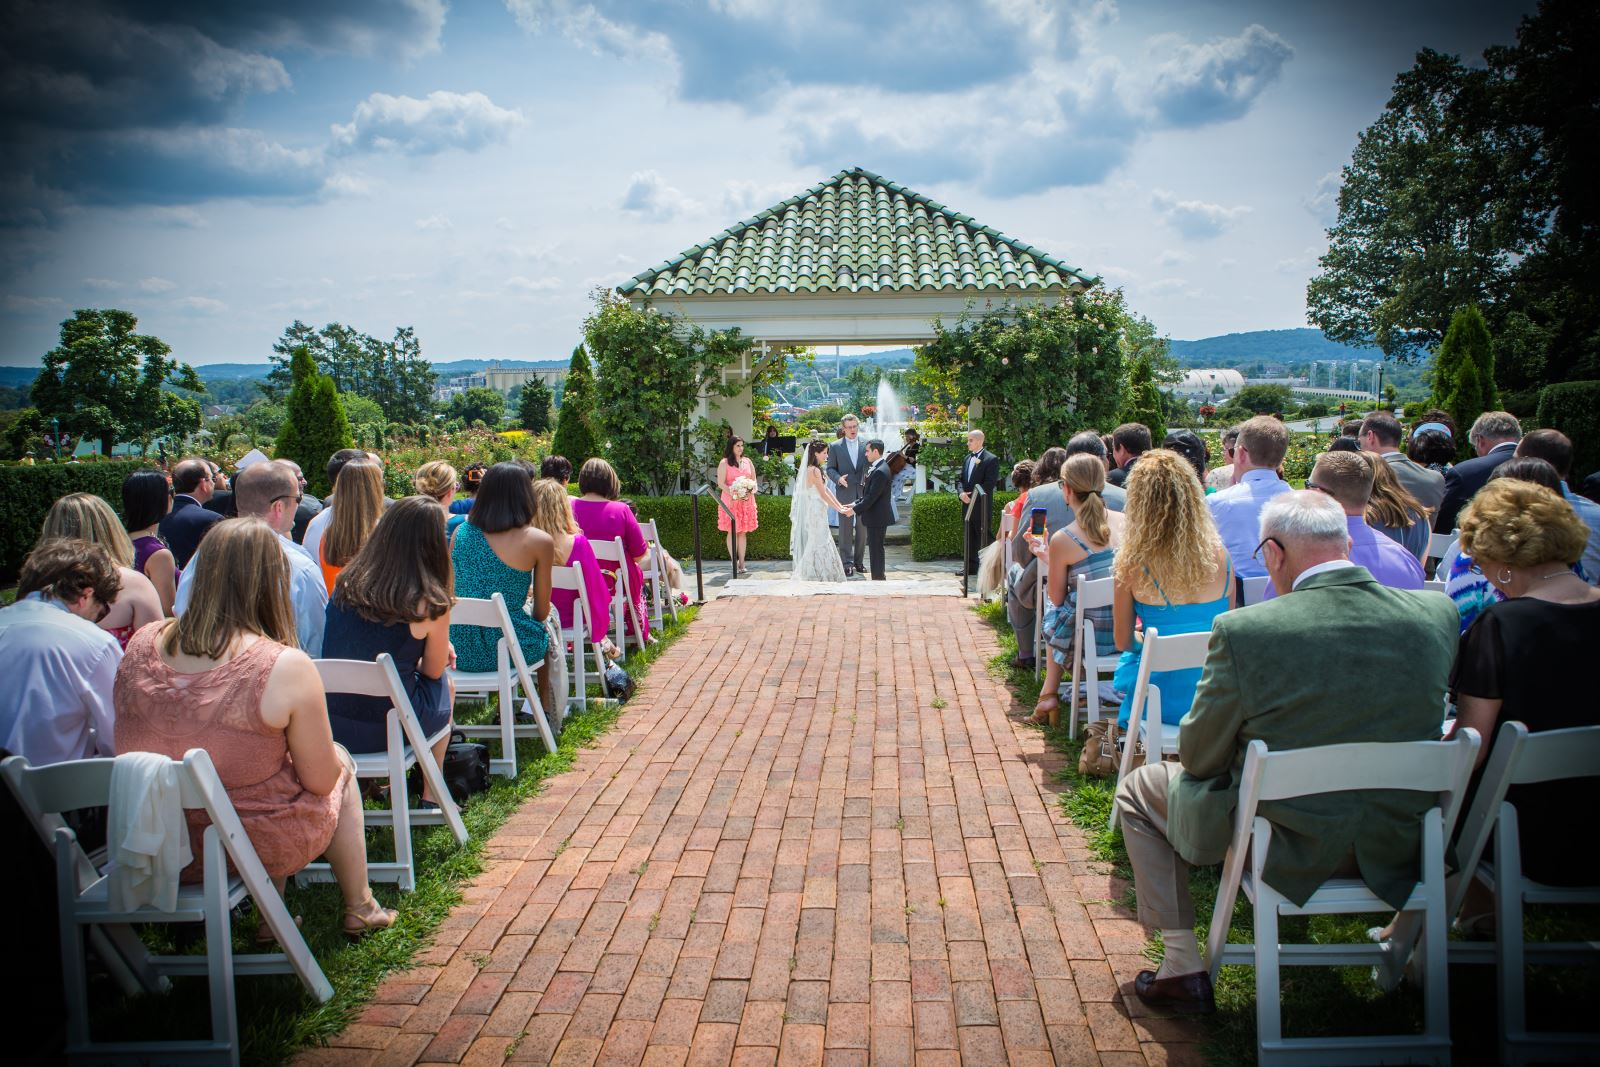 Wedding Ceremony Reception Hire: Weddings At The Hershey Gardens Conservatory